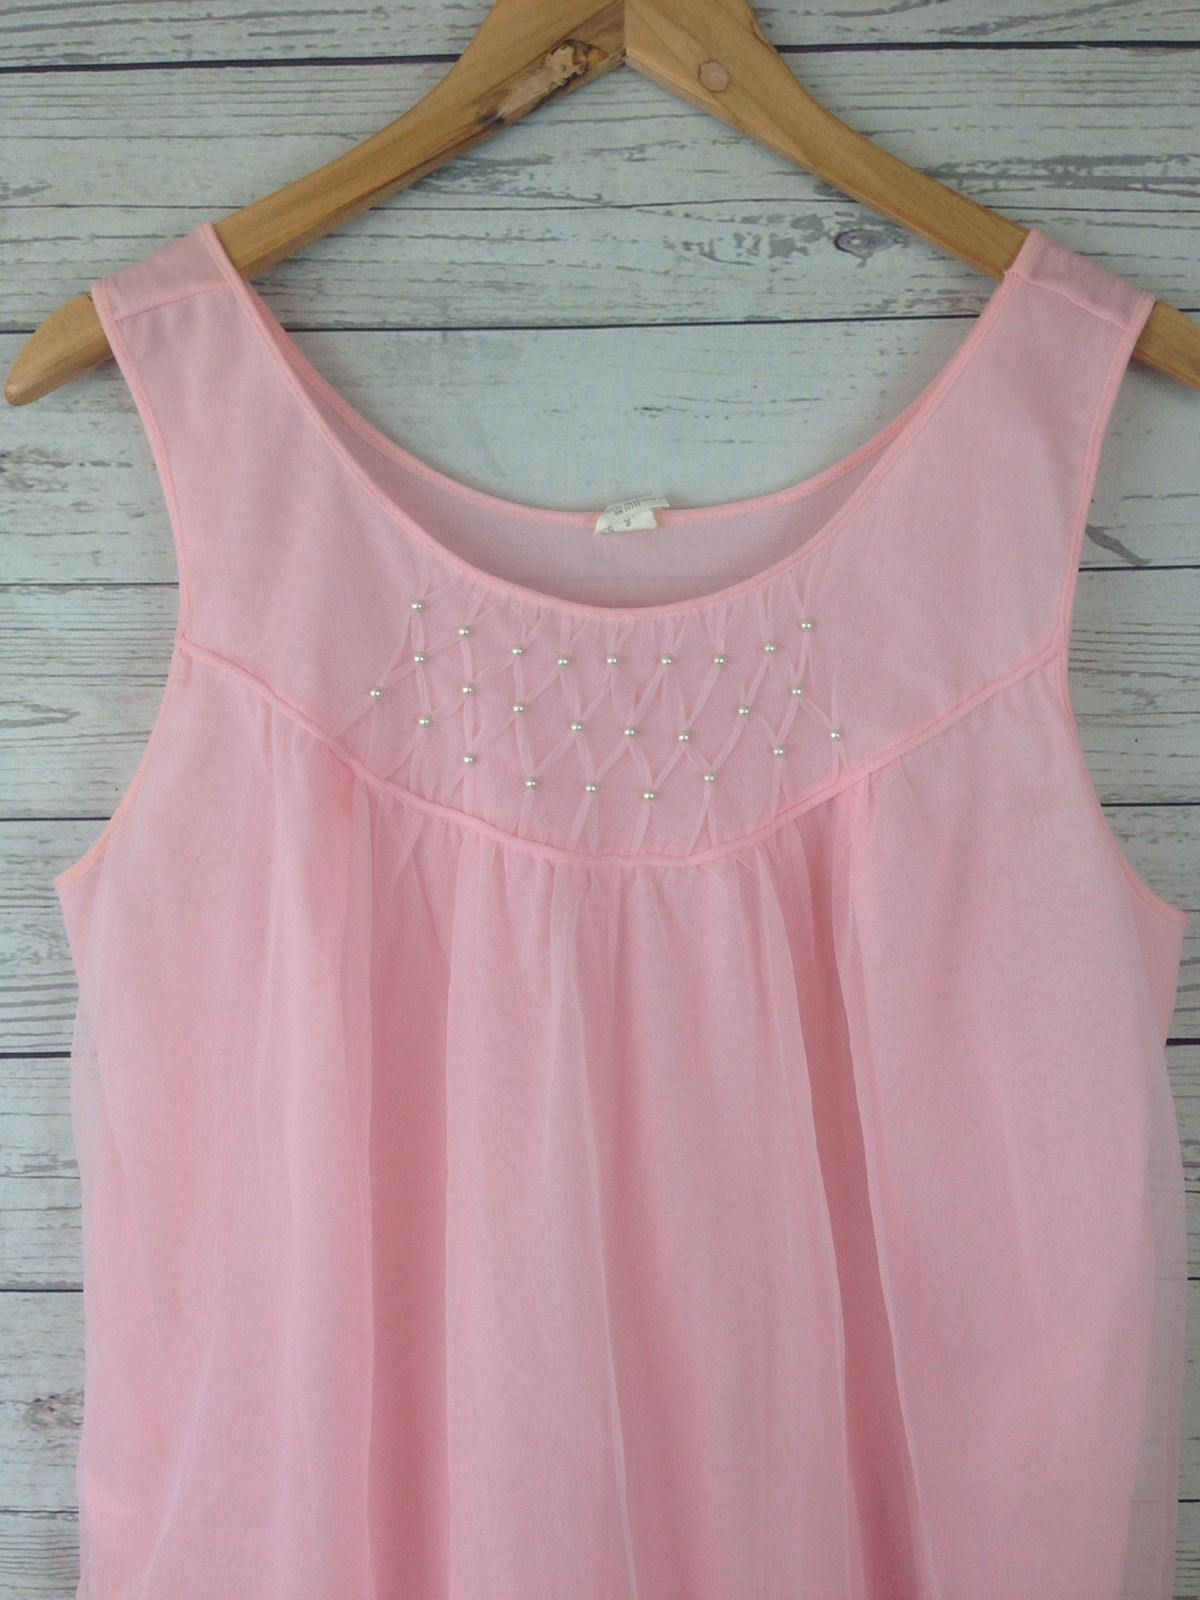 vintage 1950s pink short tulle babydoll nightie lingerie Nightgown Womens  SZ L NG15 by ExtraordinaryVtg on Etsy 3e55cb0ef